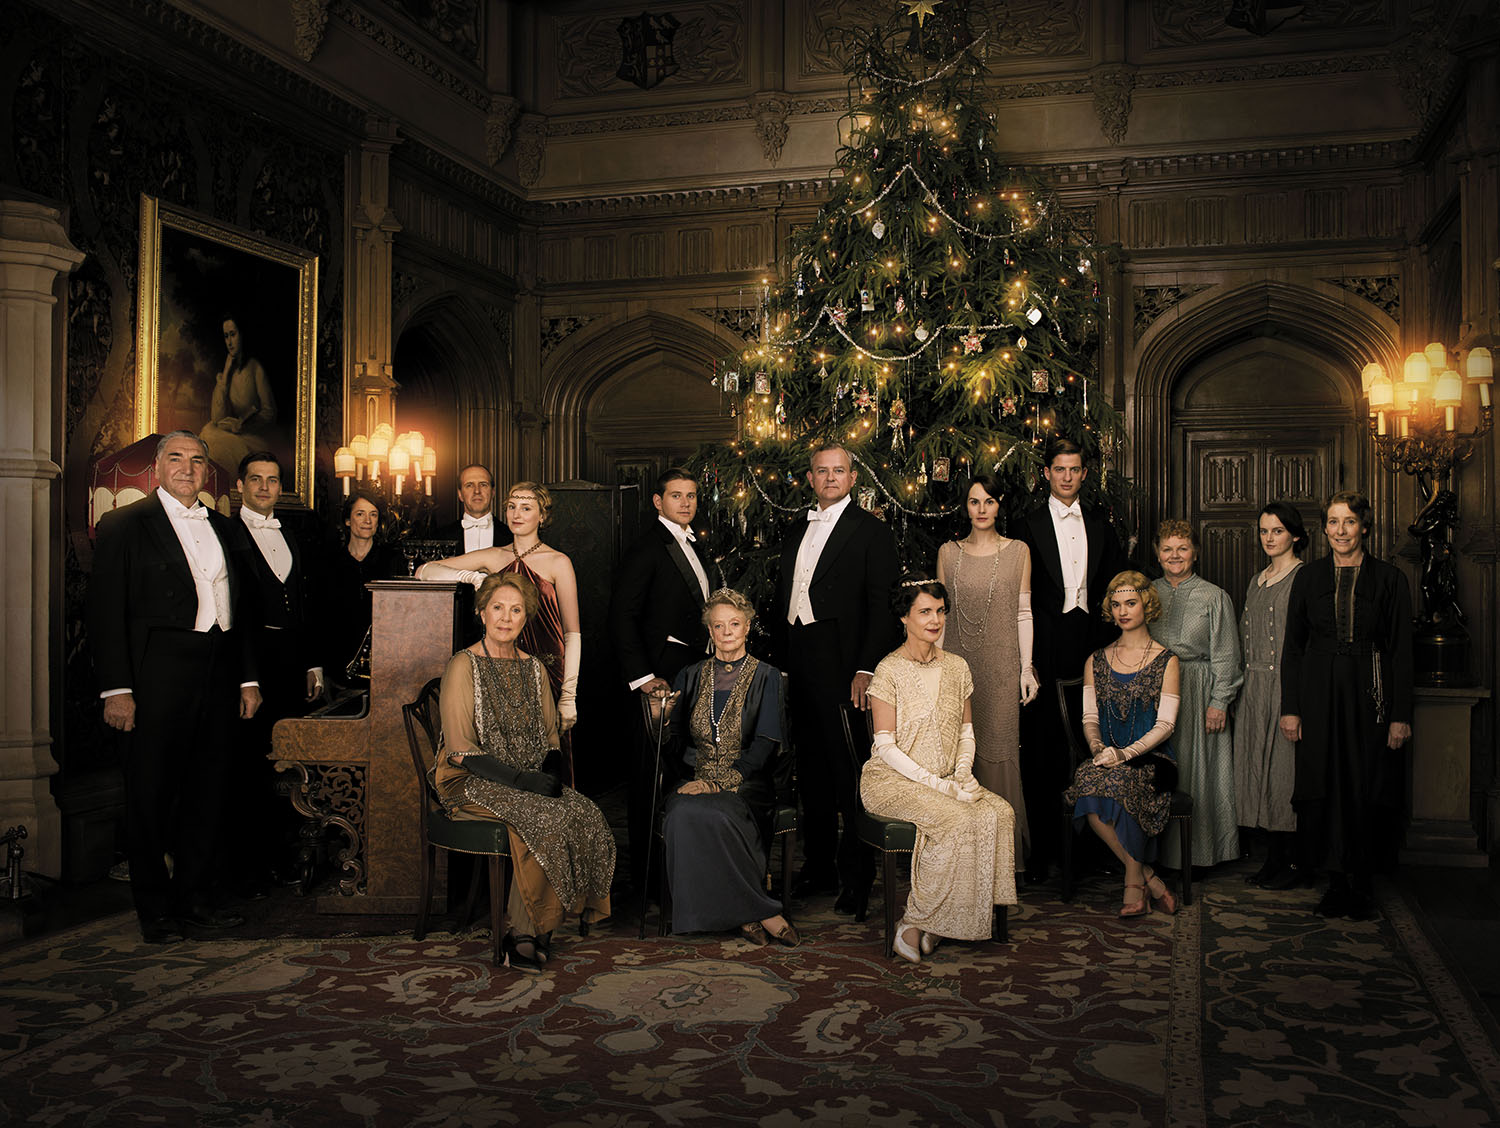 Downton During Happier Days